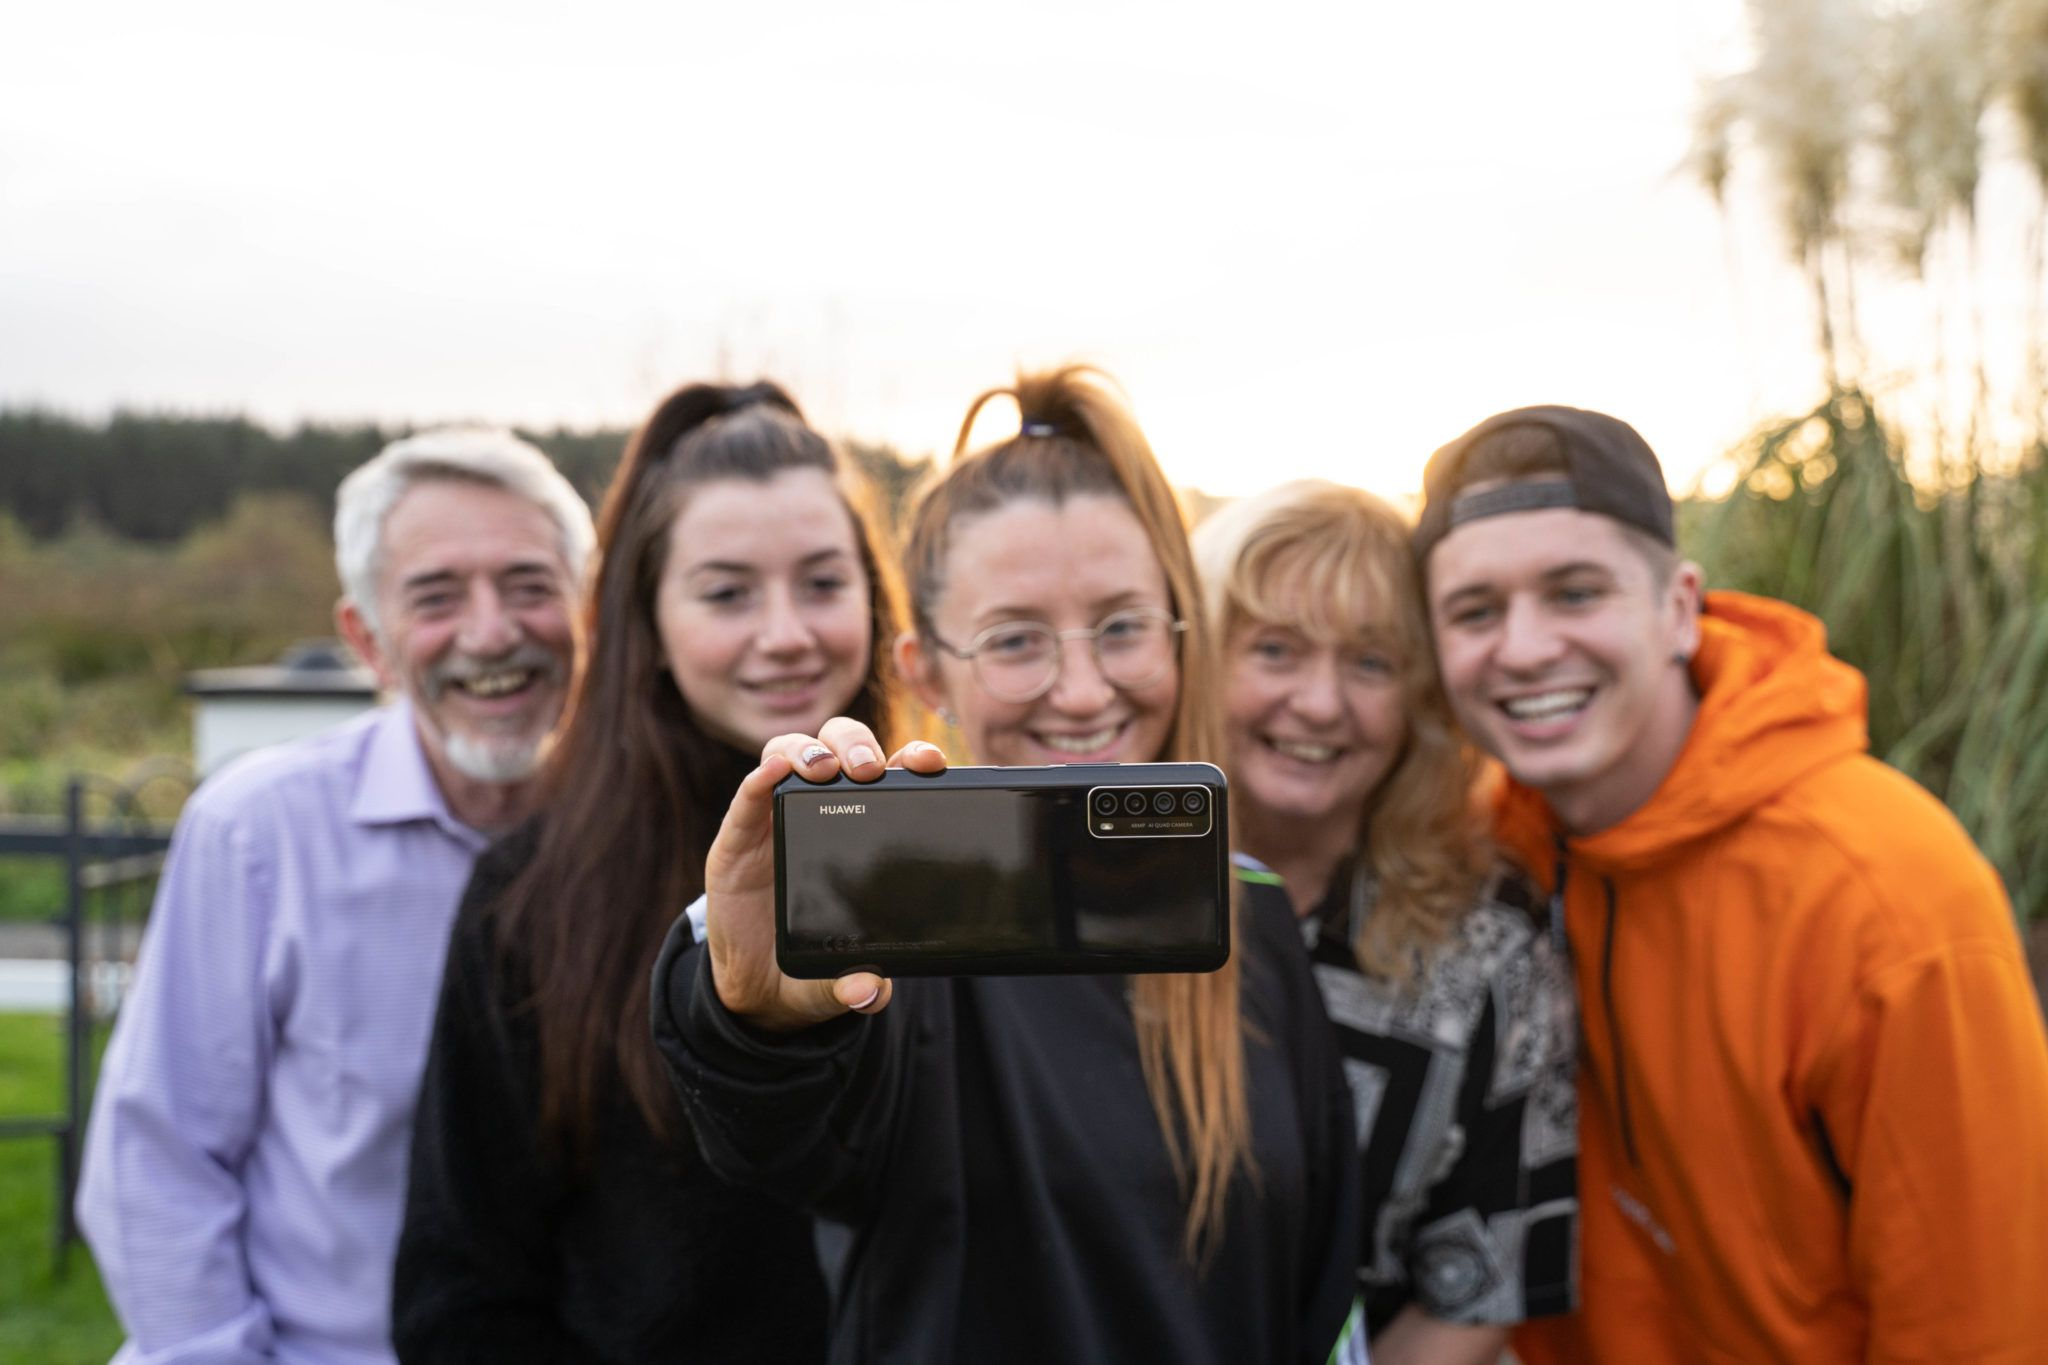 Tadhg Fleming creates new TikTok dance to give followers the chance to win a new phone